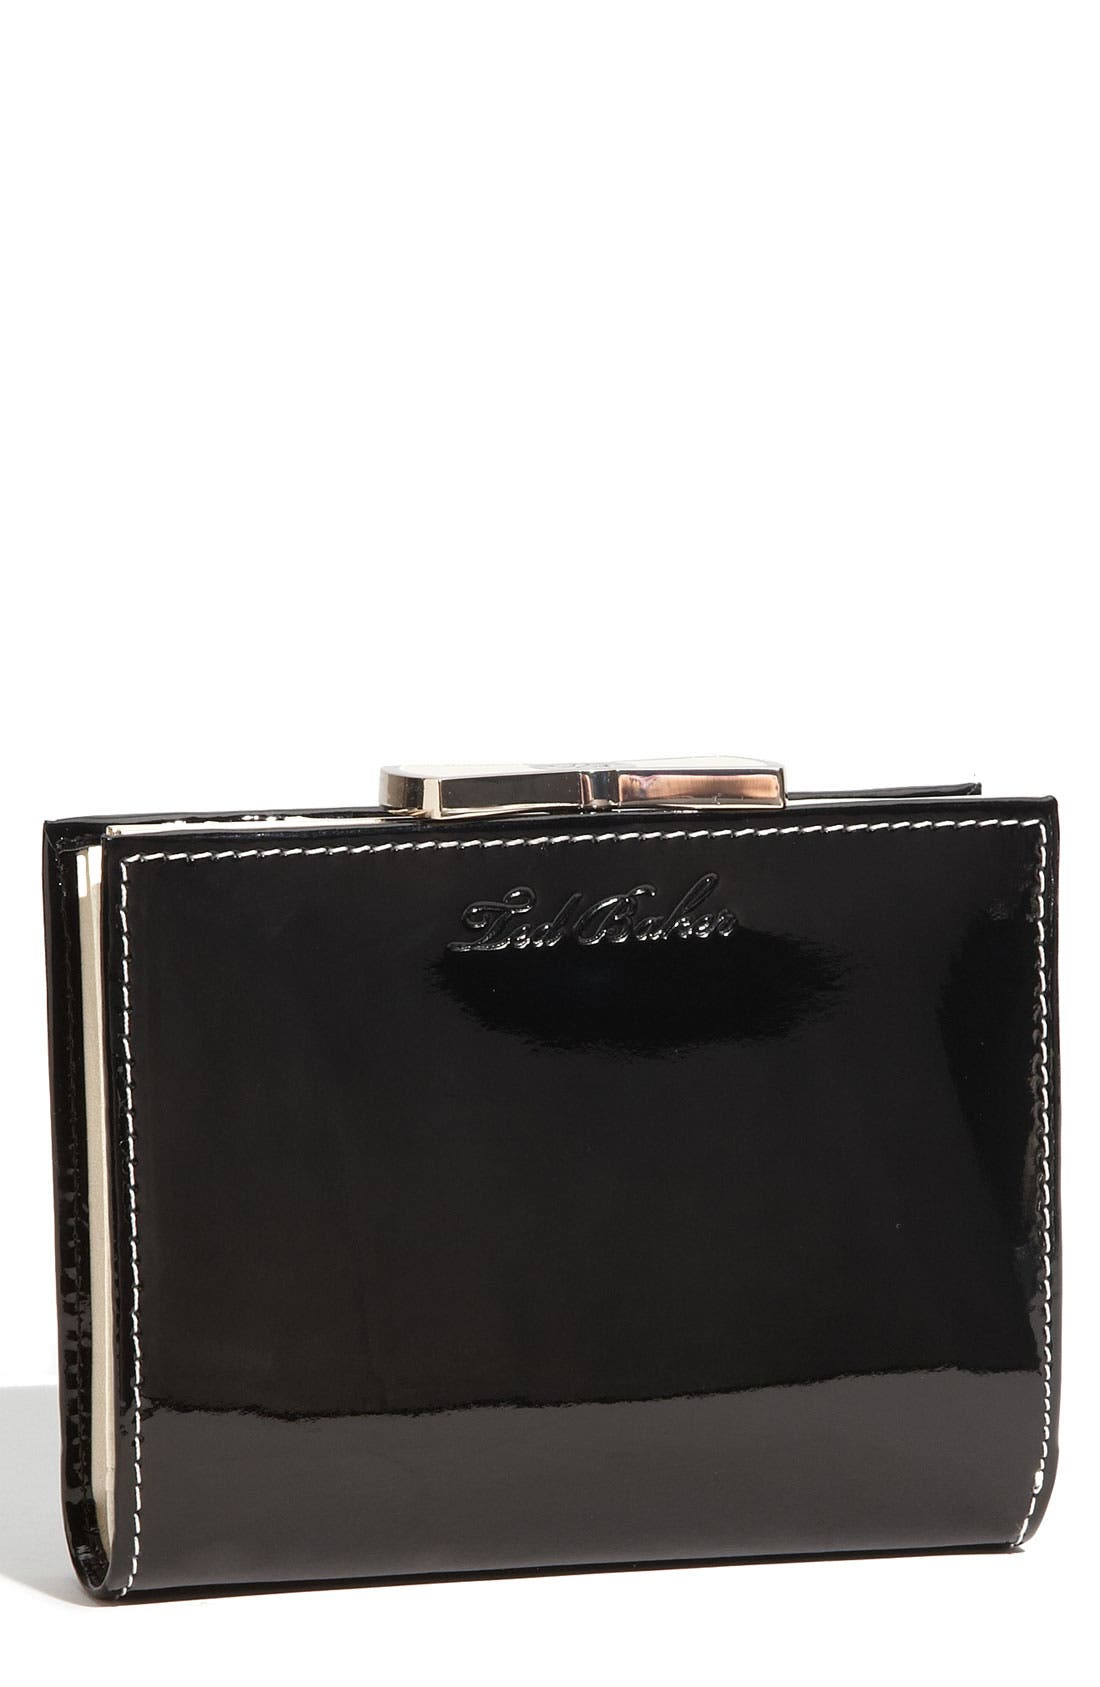 Alternate Image 1 Selected - Ted Baker London 'Bow Clasp' French Wallet